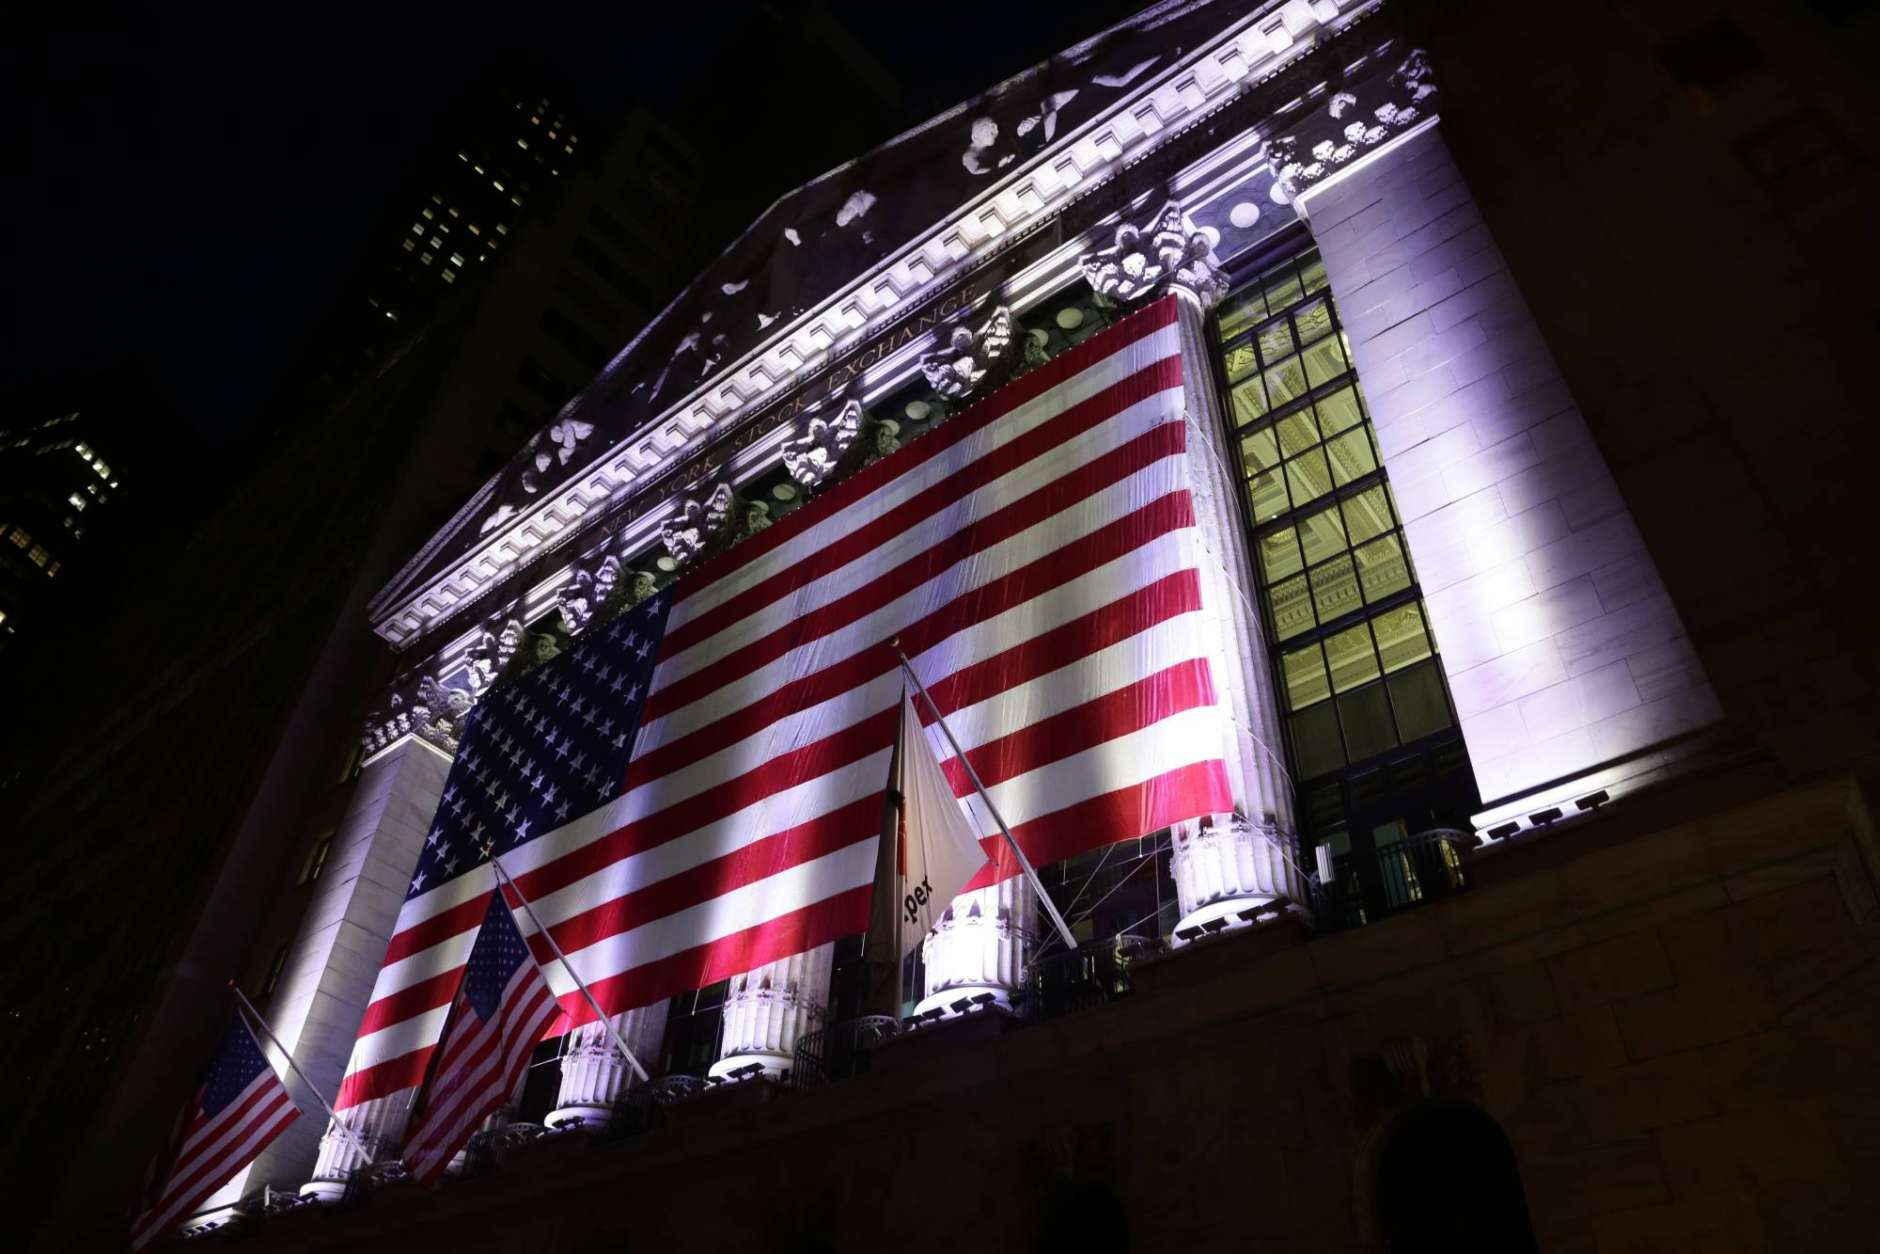 FILE - In this Friday, Feb. 17, 2017, file photo, an American flag hangs on the front of the New York Stock Exchange. Stocks around the world sank Monday, March 27, 2017, on worries that the Trump White House may not be able to help businesses as much as once thought. Many of the trends that have been in place since Election Day went into sharp reverse: The dollar's value sank against other currencies, as did bank stocks, while prices jumped for Treasury bonds. (AP Photo/Peter Morgan, File)